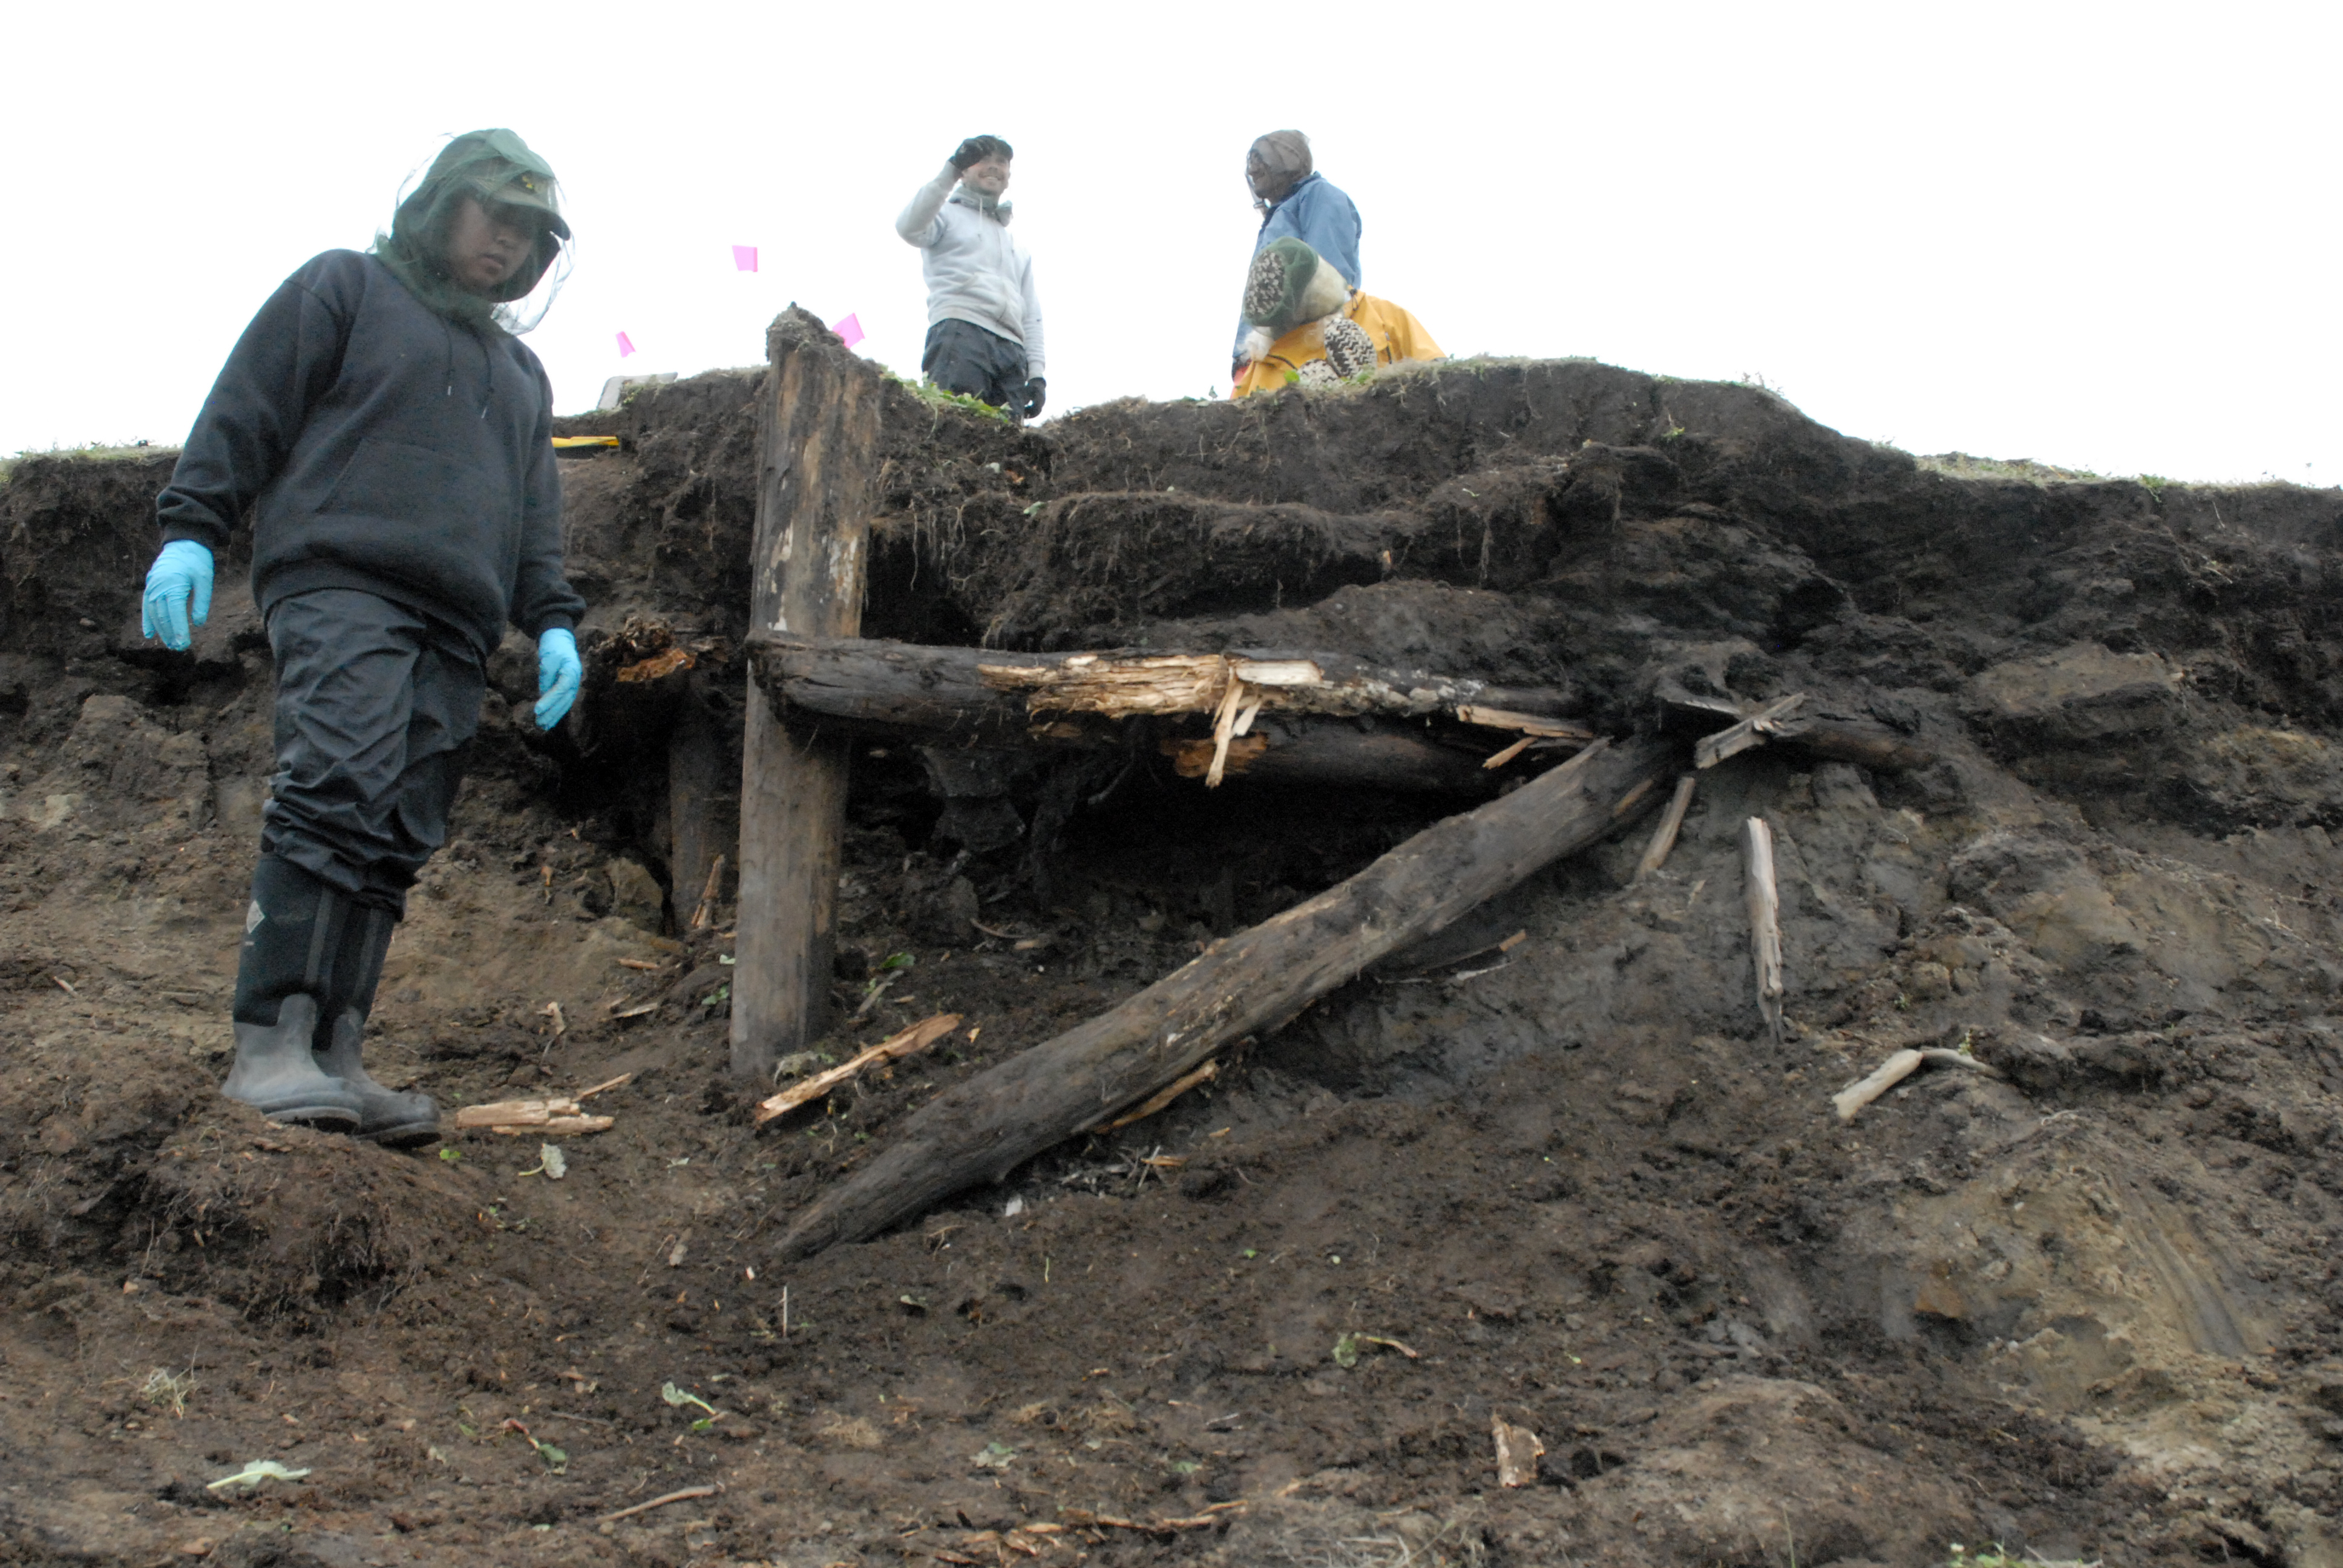 Timbers of a house are exposed at the Walakpa site southwest of Utqiaġvik following a storm in late summer of 2013. The discovery prompted renewed excavation following a hiatus since work was last conducted there in the late 1960s.